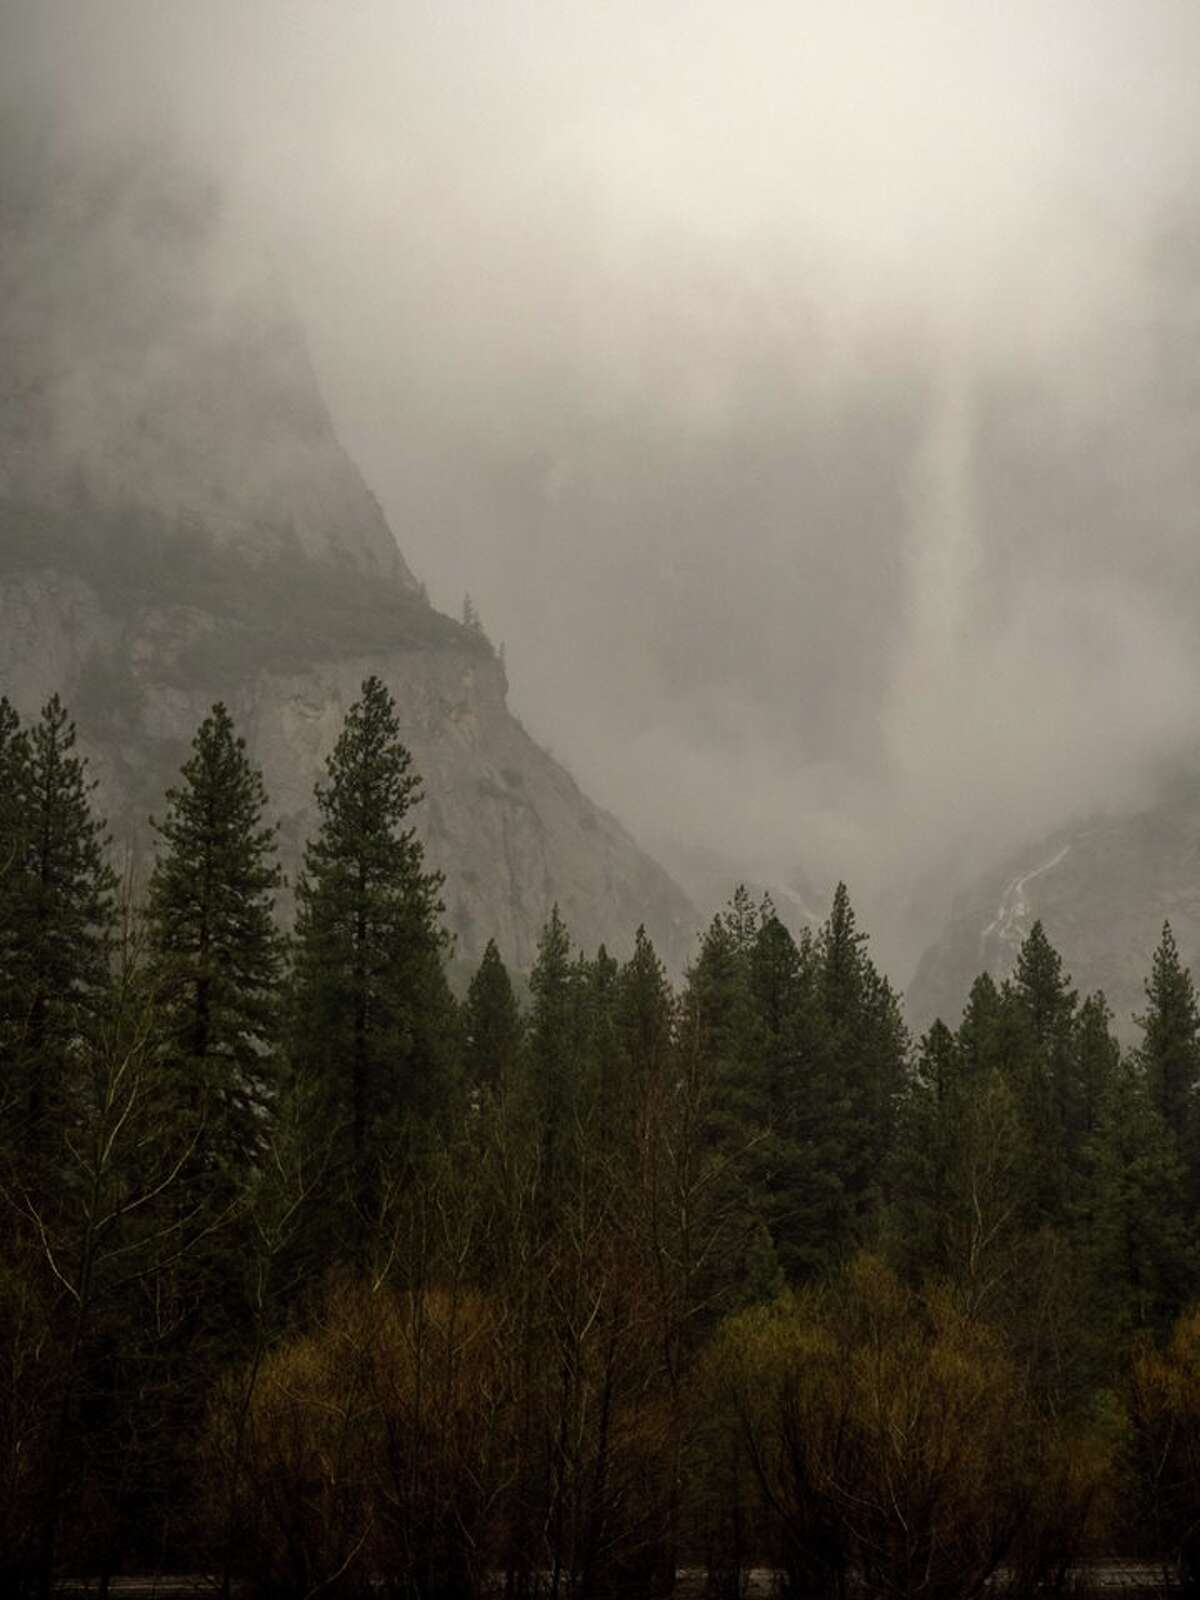 Upper Yosemite Fall roaring during an atmospheric river event on April 7, 2018